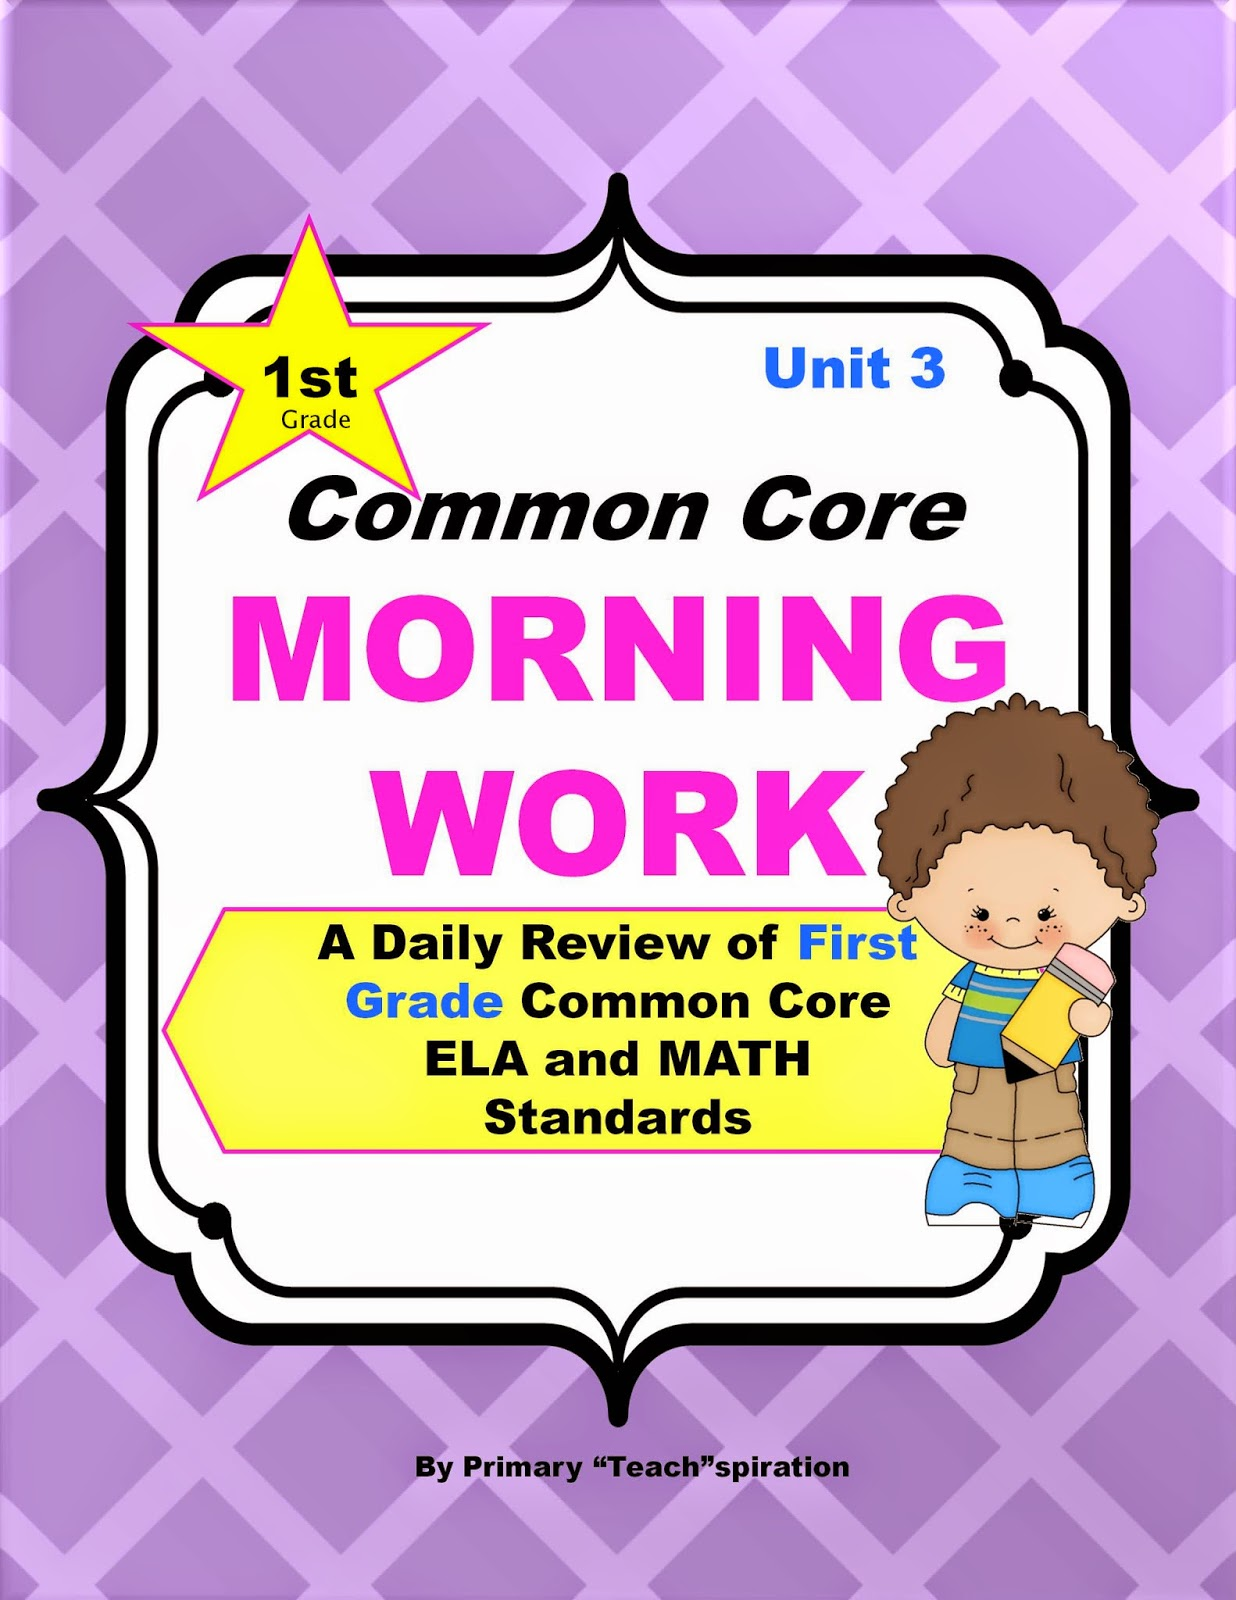 http://www.teacherspayteachers.com/Product/Common-Core-Morning-Work-Grade-1-Unit-3-A-Daily-ELA-Math-Review-1363650